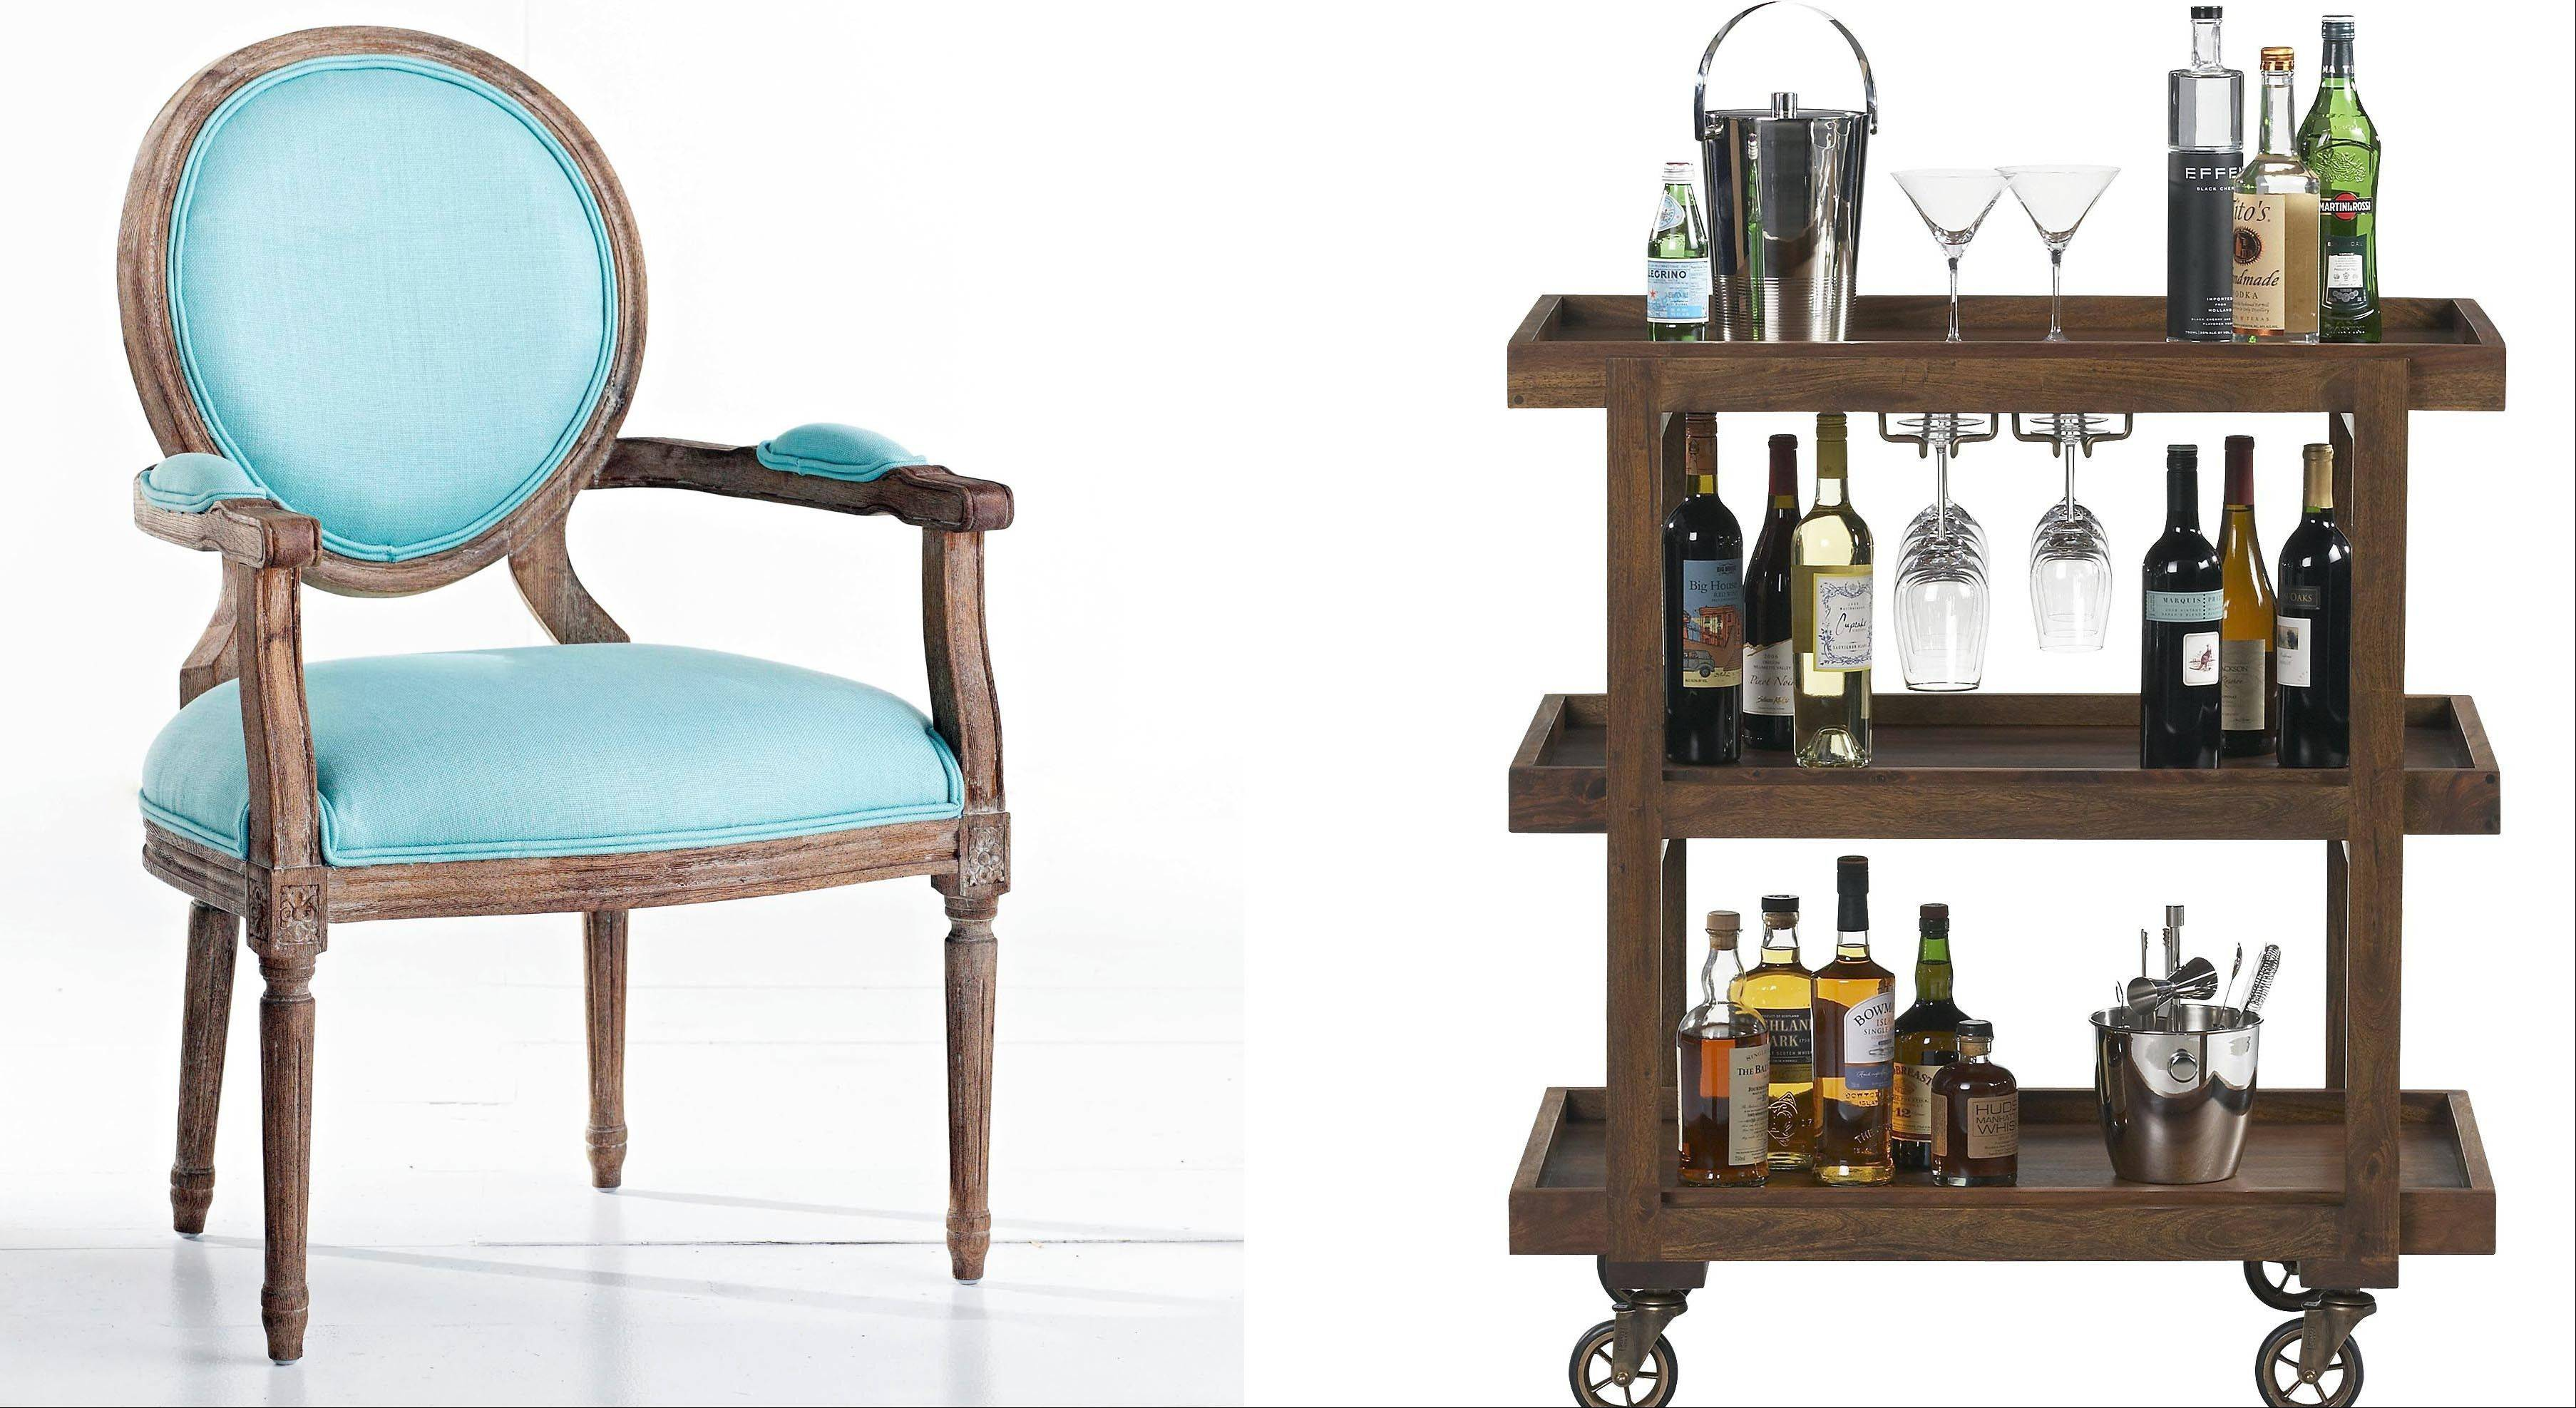 At Wisteria, designers have updated the classic oval-backed Louis XVI chair in weathered oak with pastel Belgian linen upholstery, giving the chair eye-candy appeal; a small cart with a big footprint, Crate & Barrel's Collins trolley-style cart can free up kitchen cabinet space.